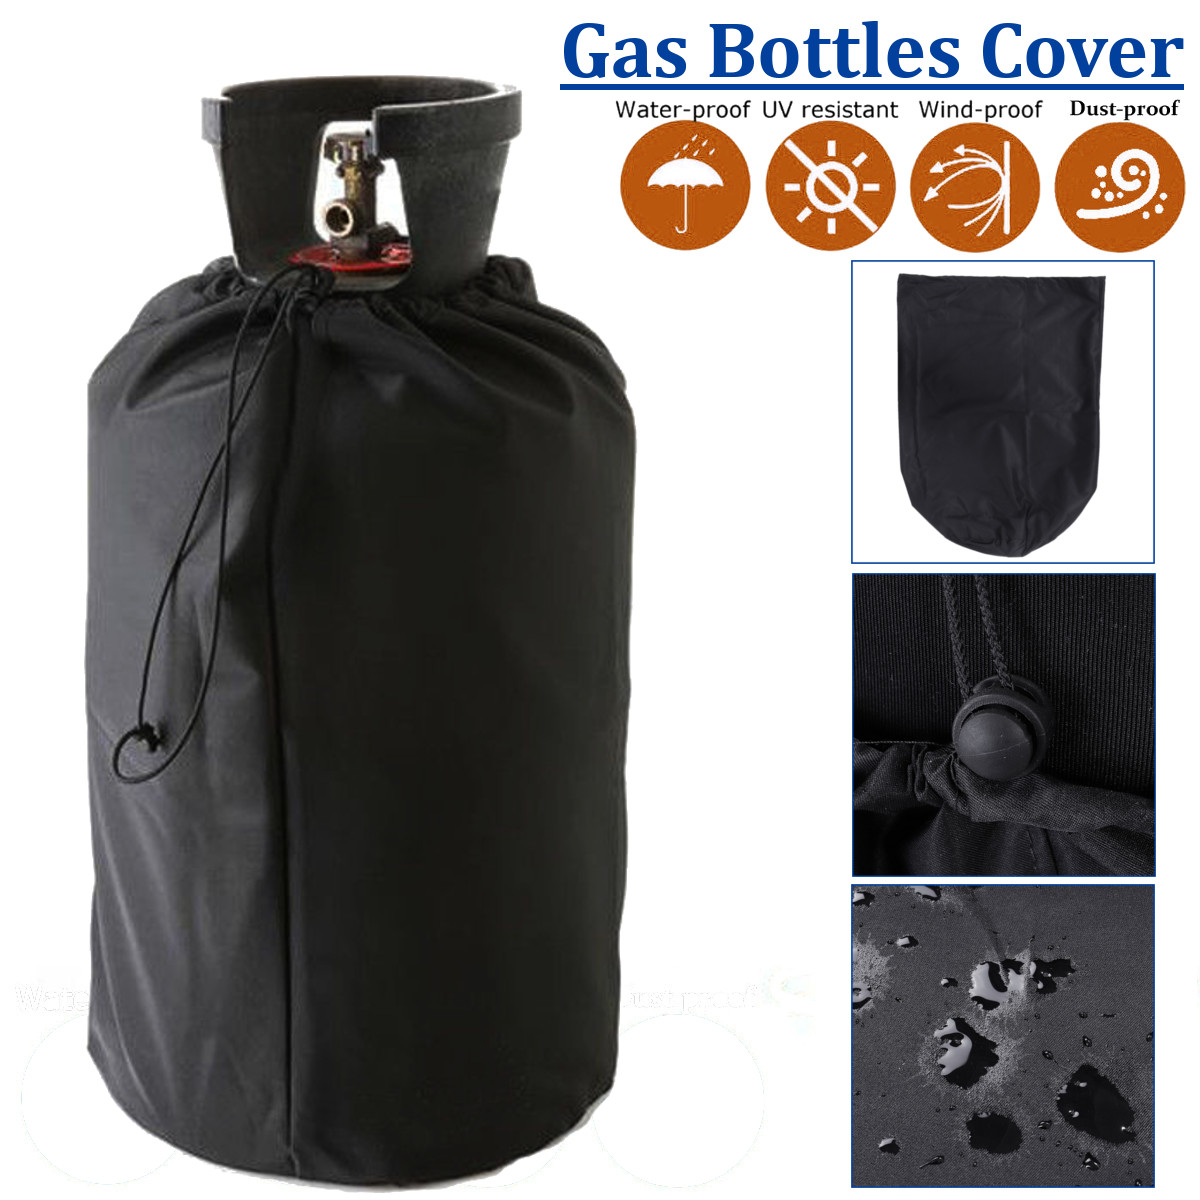 PVC Waterproof BBQ Grill Gas Bottles Cover Protection Durable Outdoor Rain Grill Anti Dust Protector All-Purpose Covers